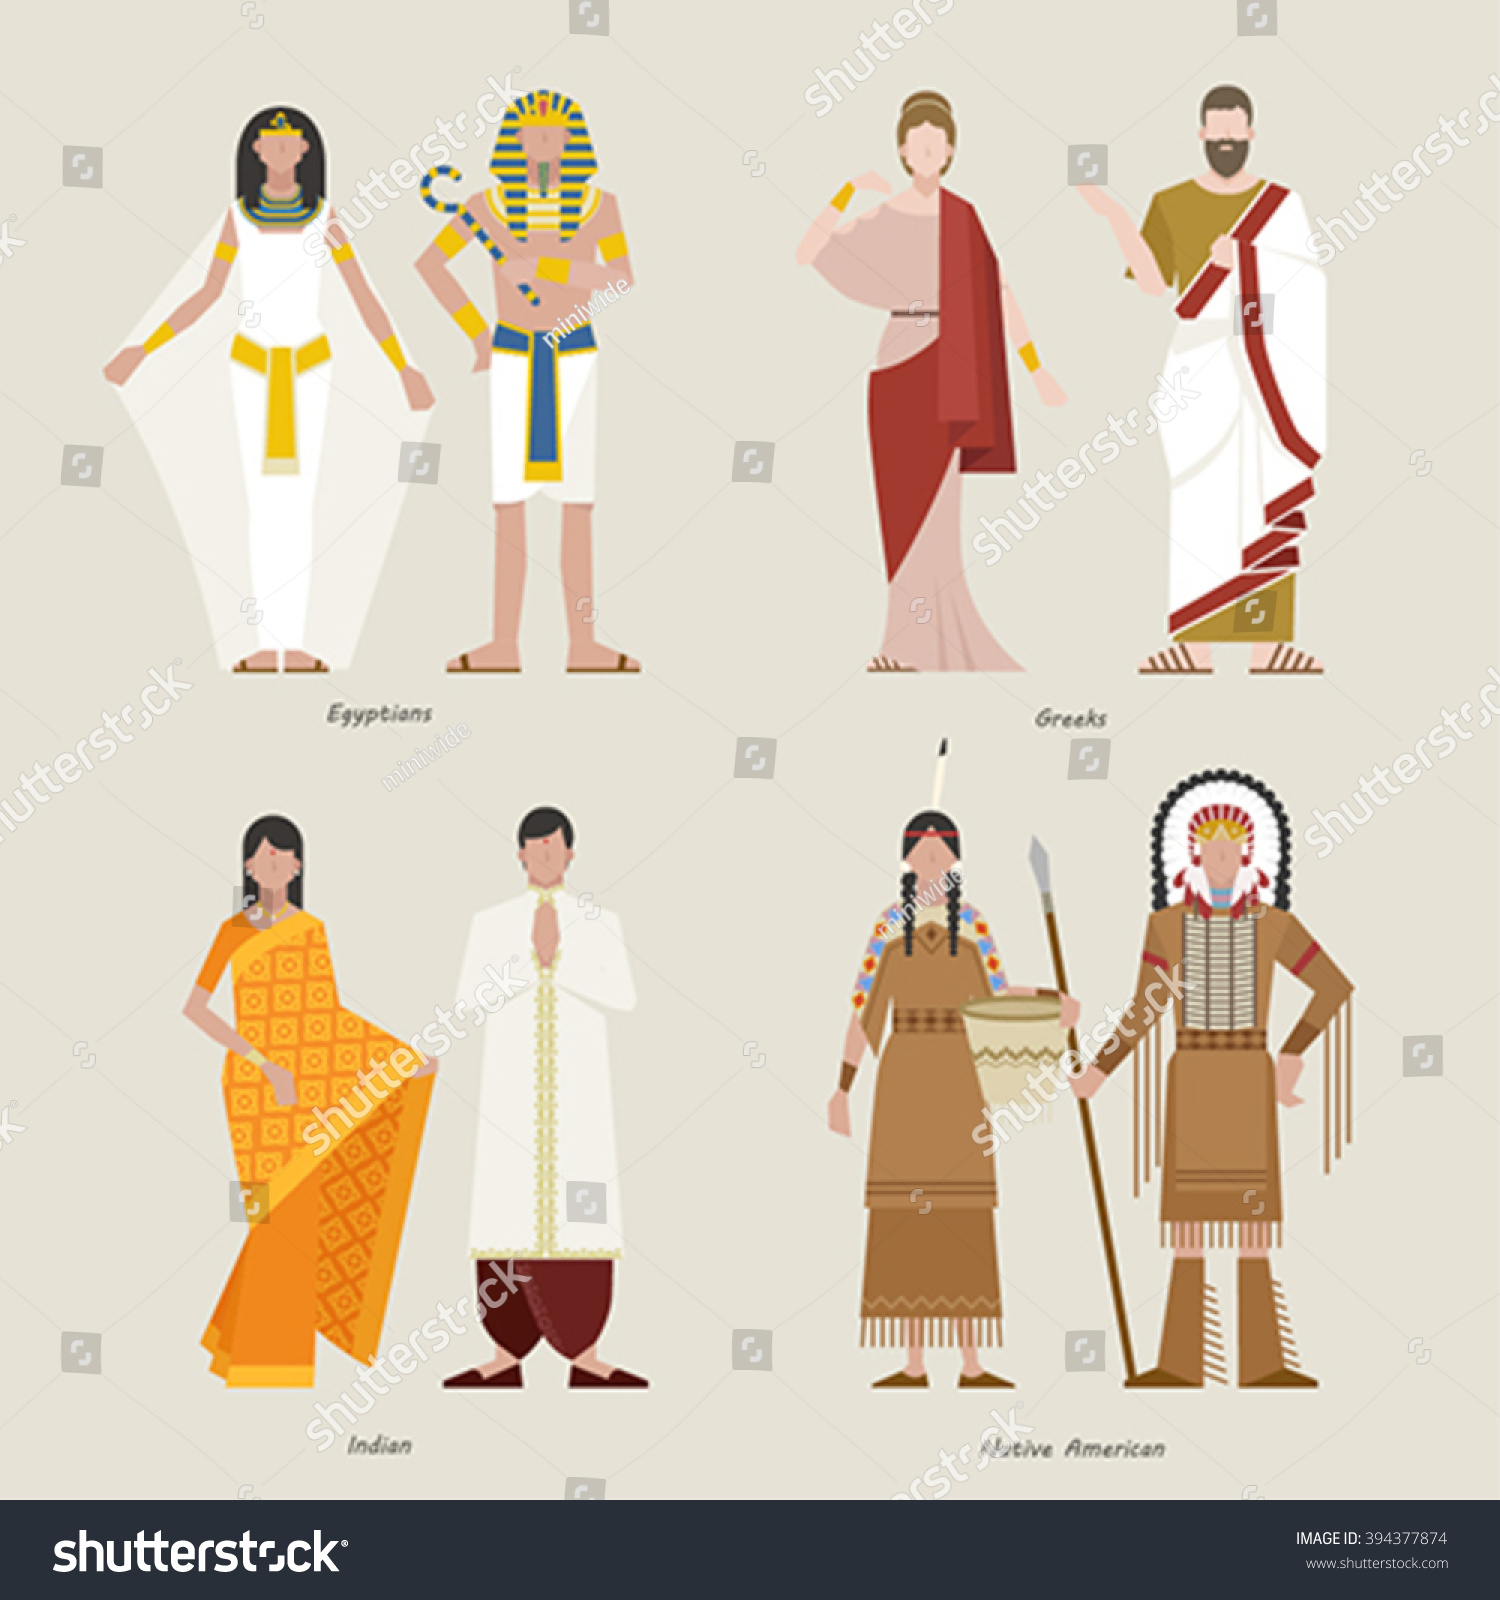 Ancient Clothing Egyptian Greeke Indian Native Stock ...